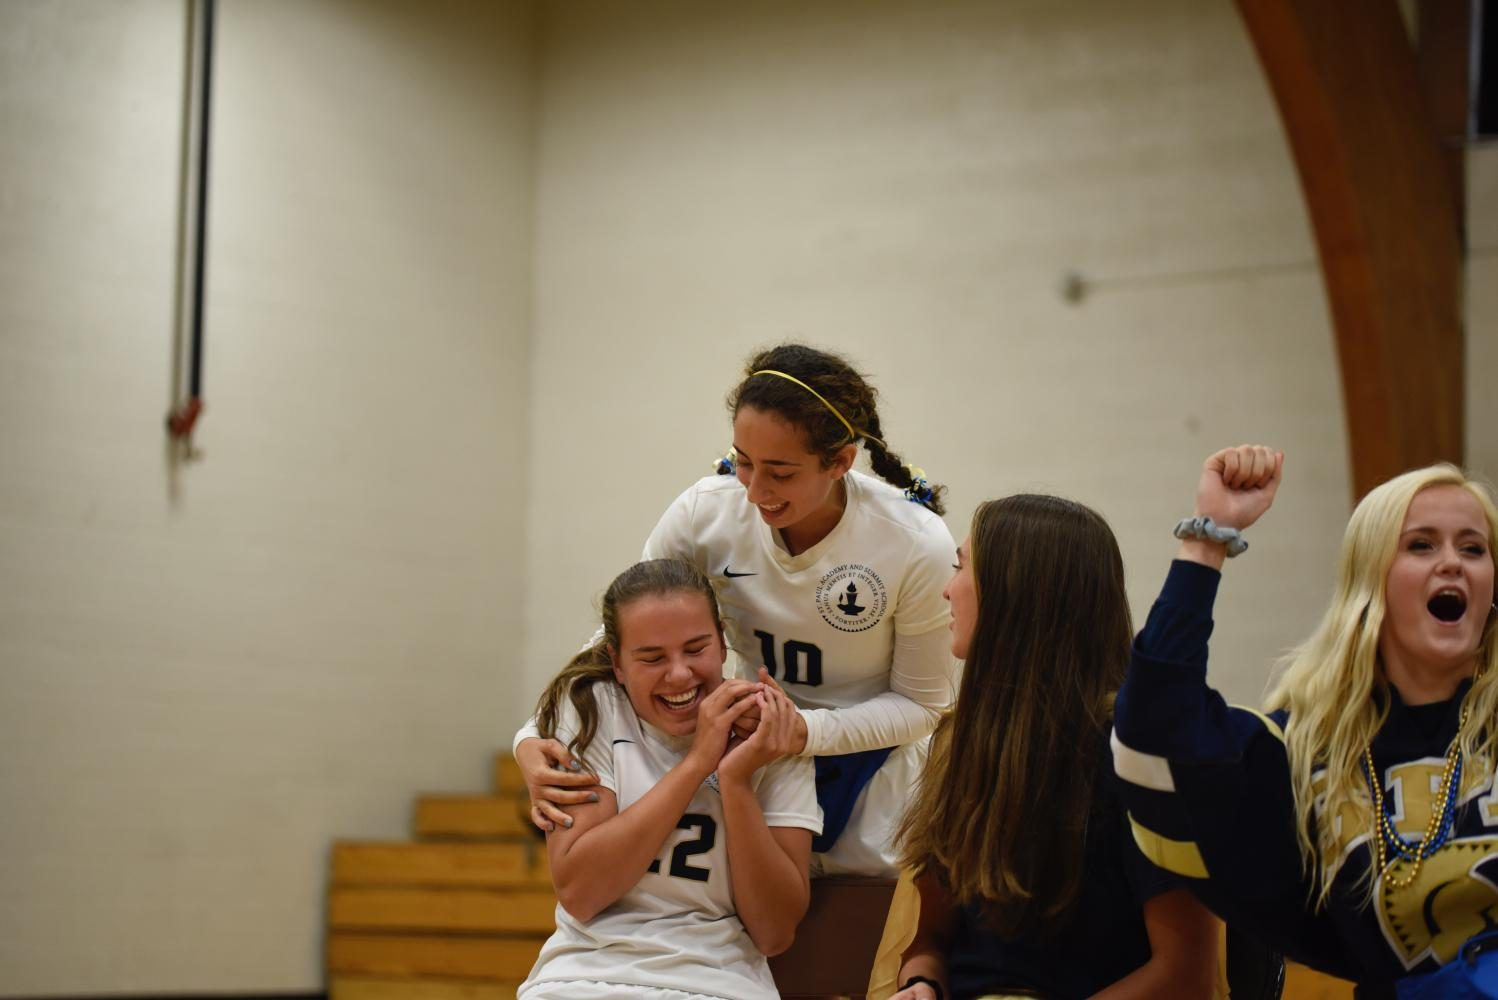 Seniors and captains of GVS Dina Moradian and Kelly Fiedler cheer during captain challenges.